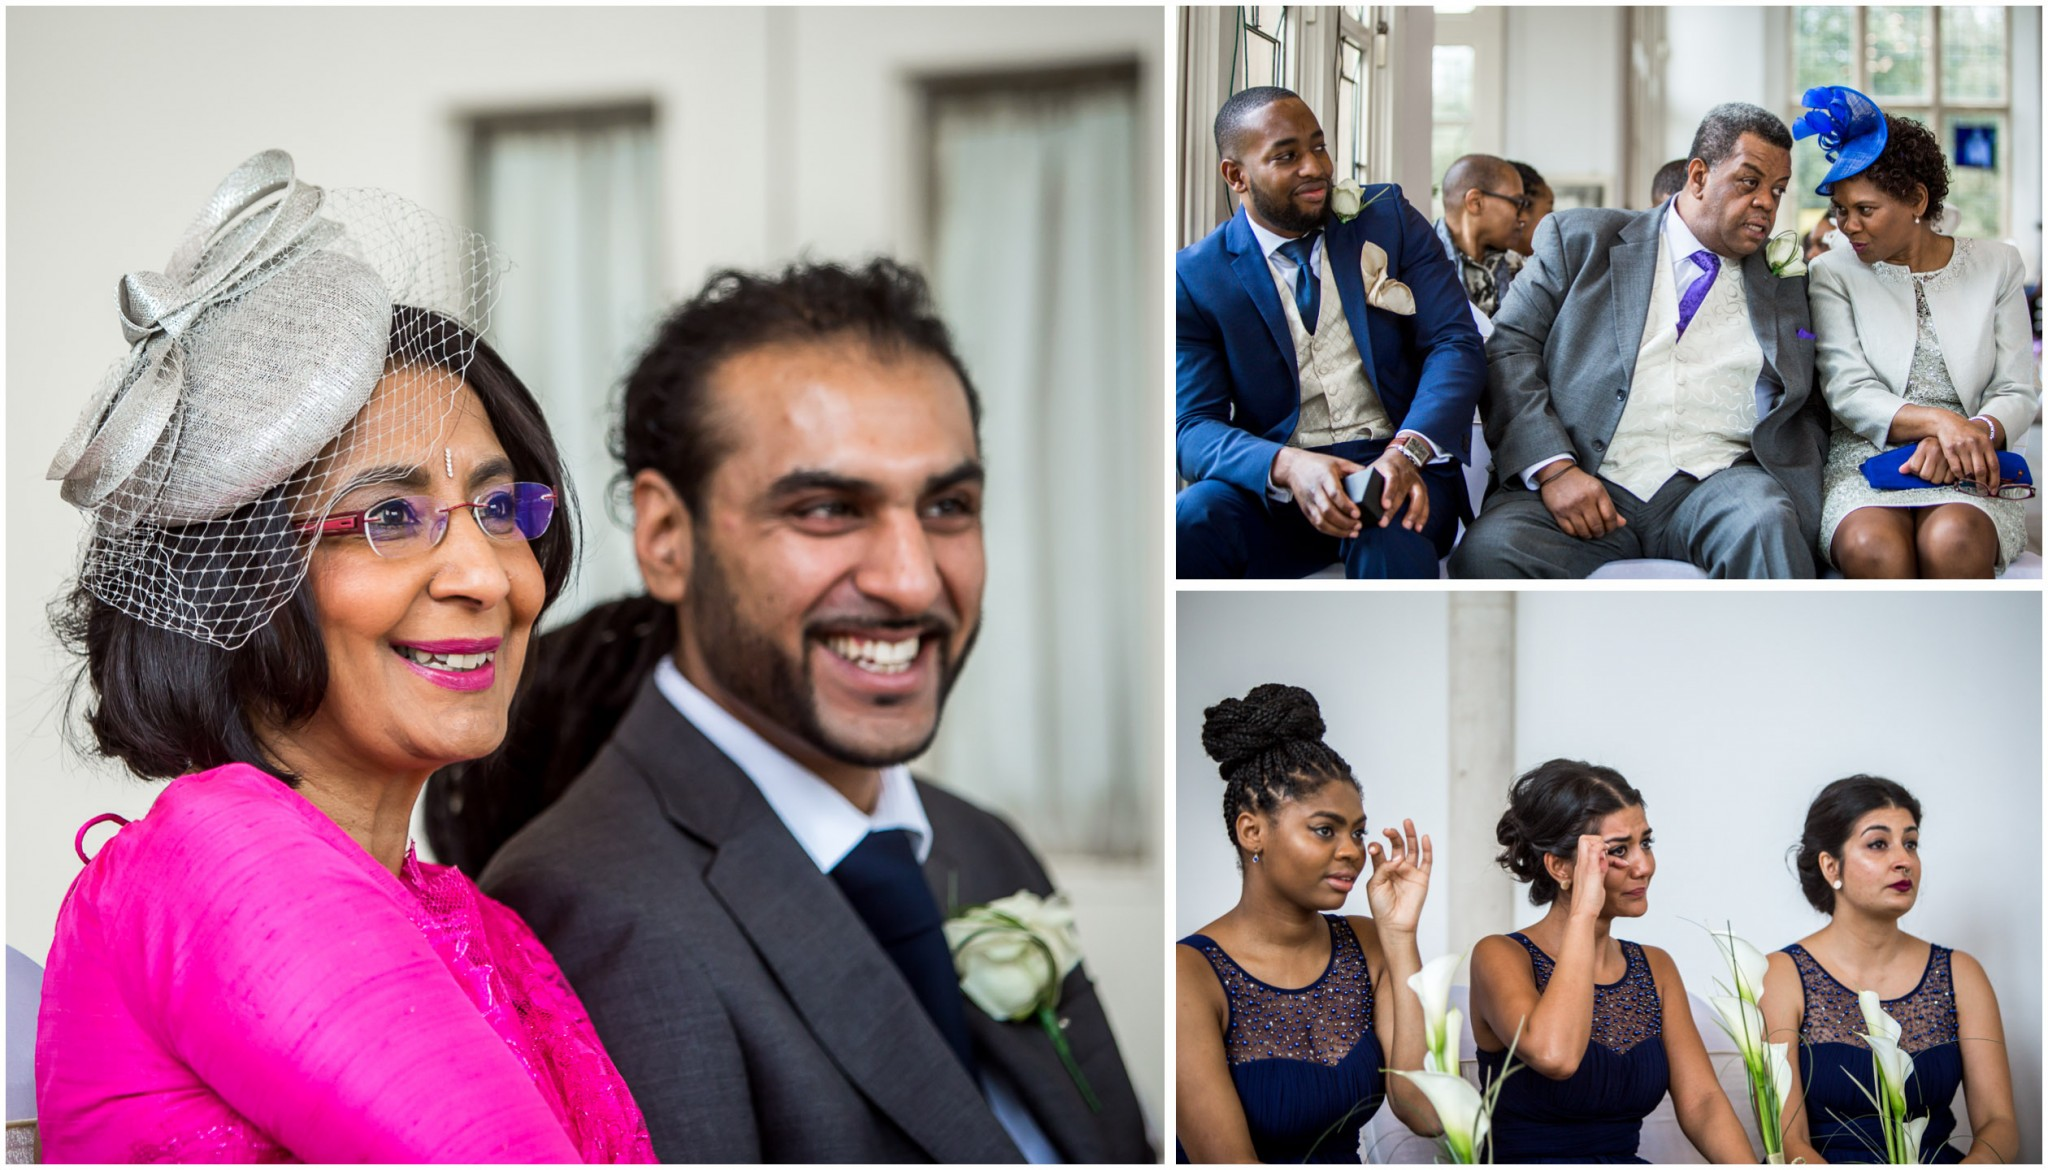 Highcliffe Castle Wedding Guest reaction to first kiss